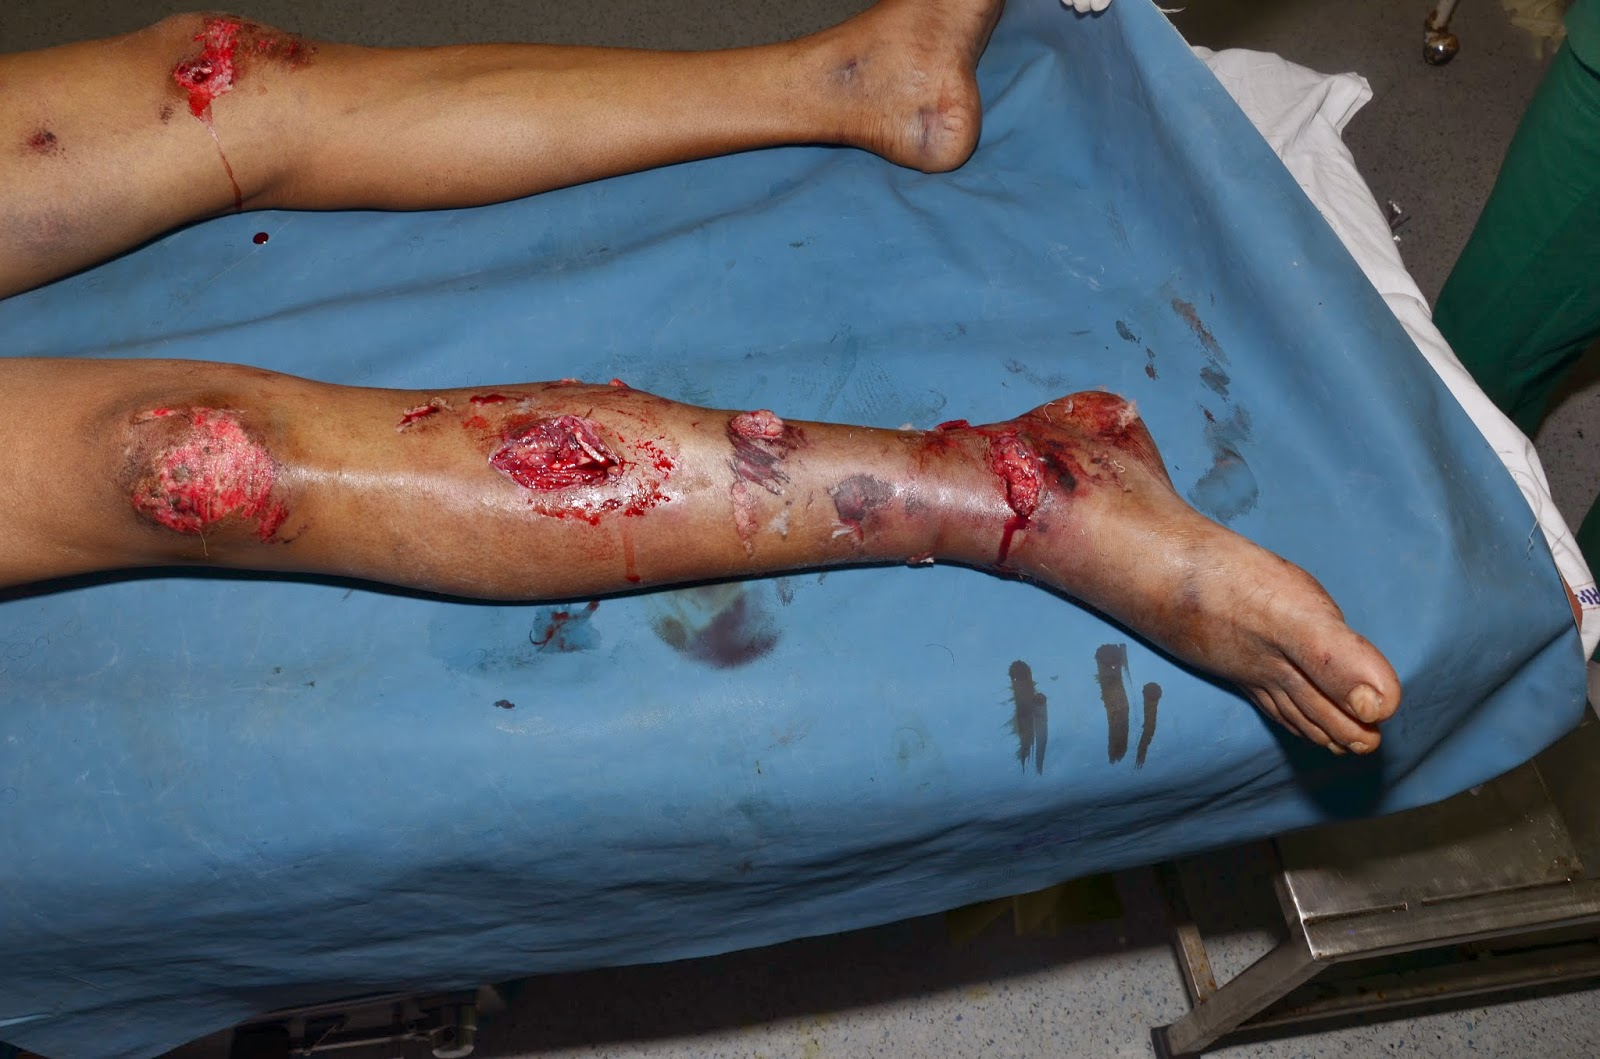 FRACTURE (LEG) TIBIA WITH DEGLOVING OF ENTIRE MEDIAL SKIN OVER TIBIA -1.bp.blogspot.com